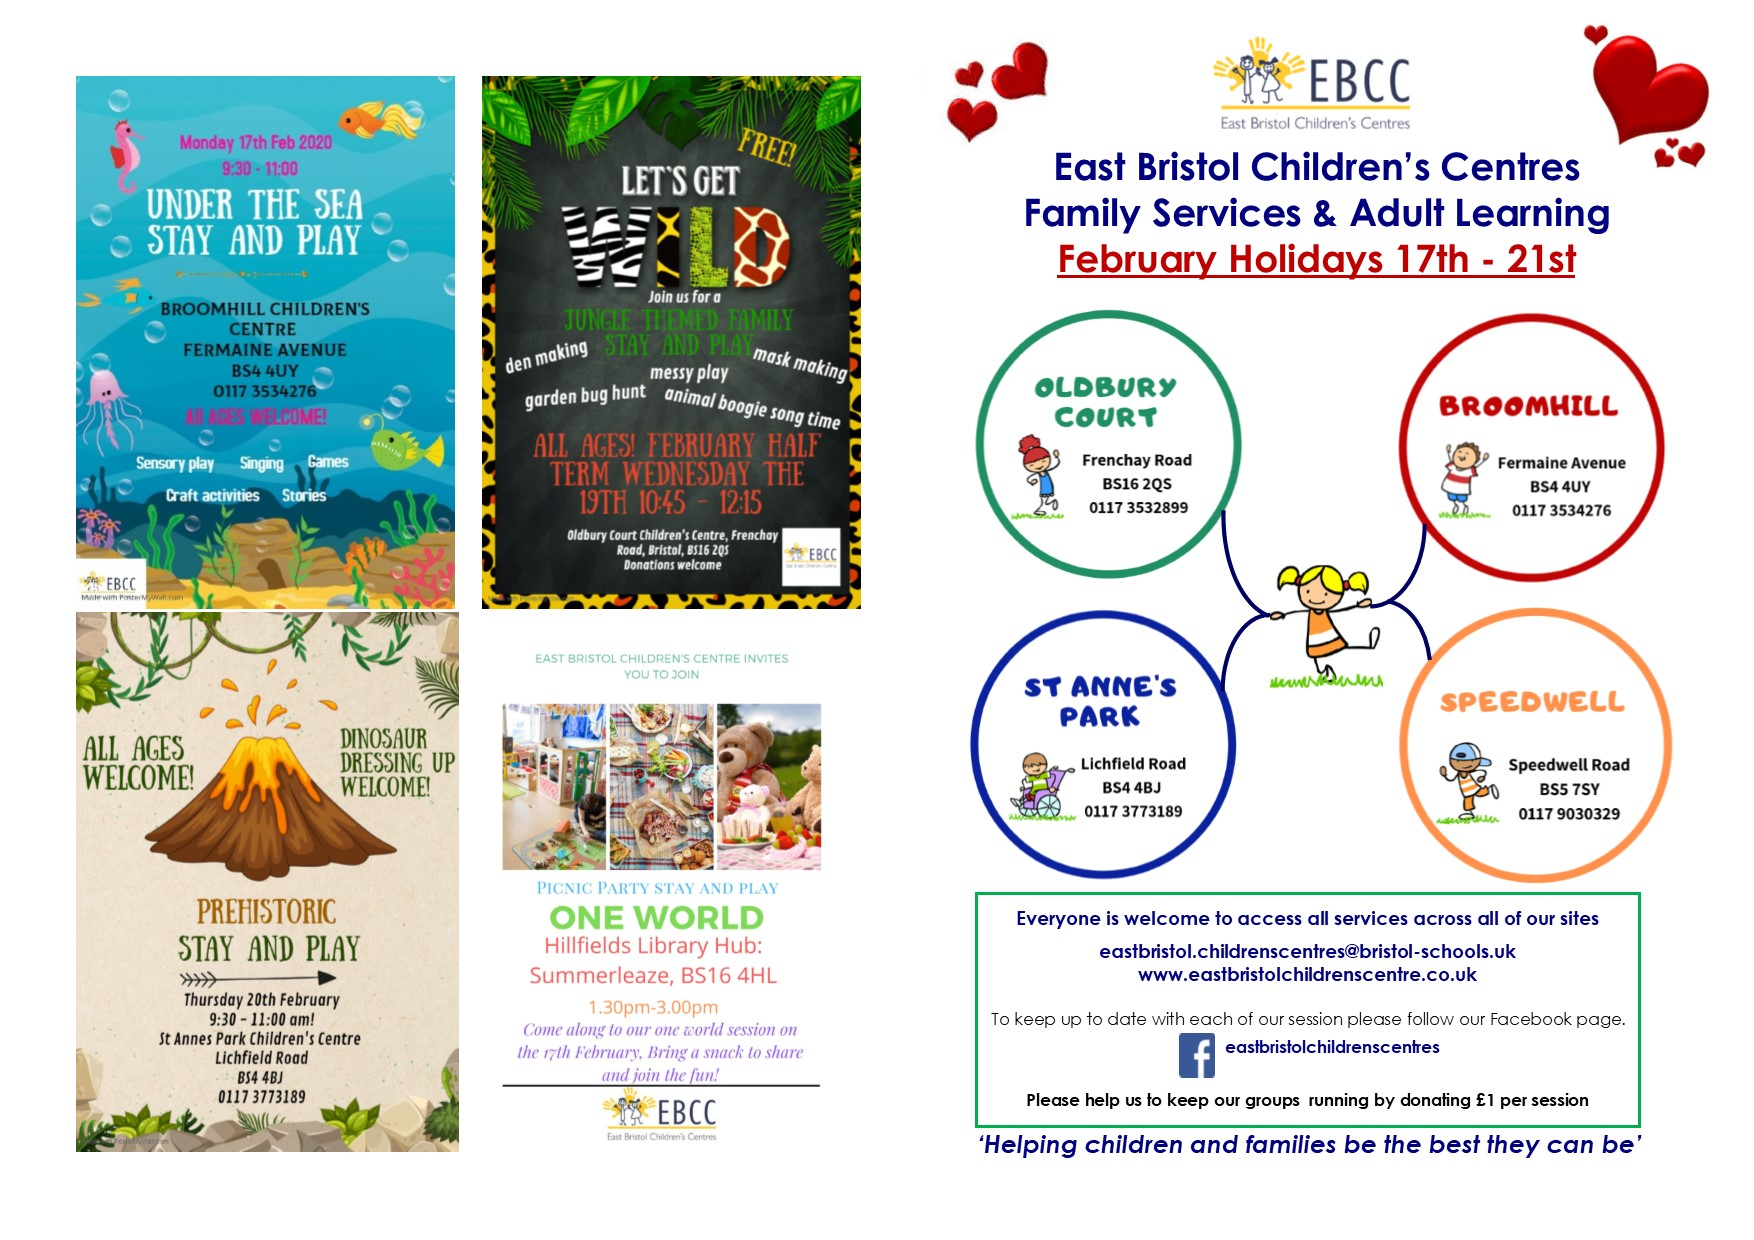 East Bristol Children's Centres Family Services & Adult Learning